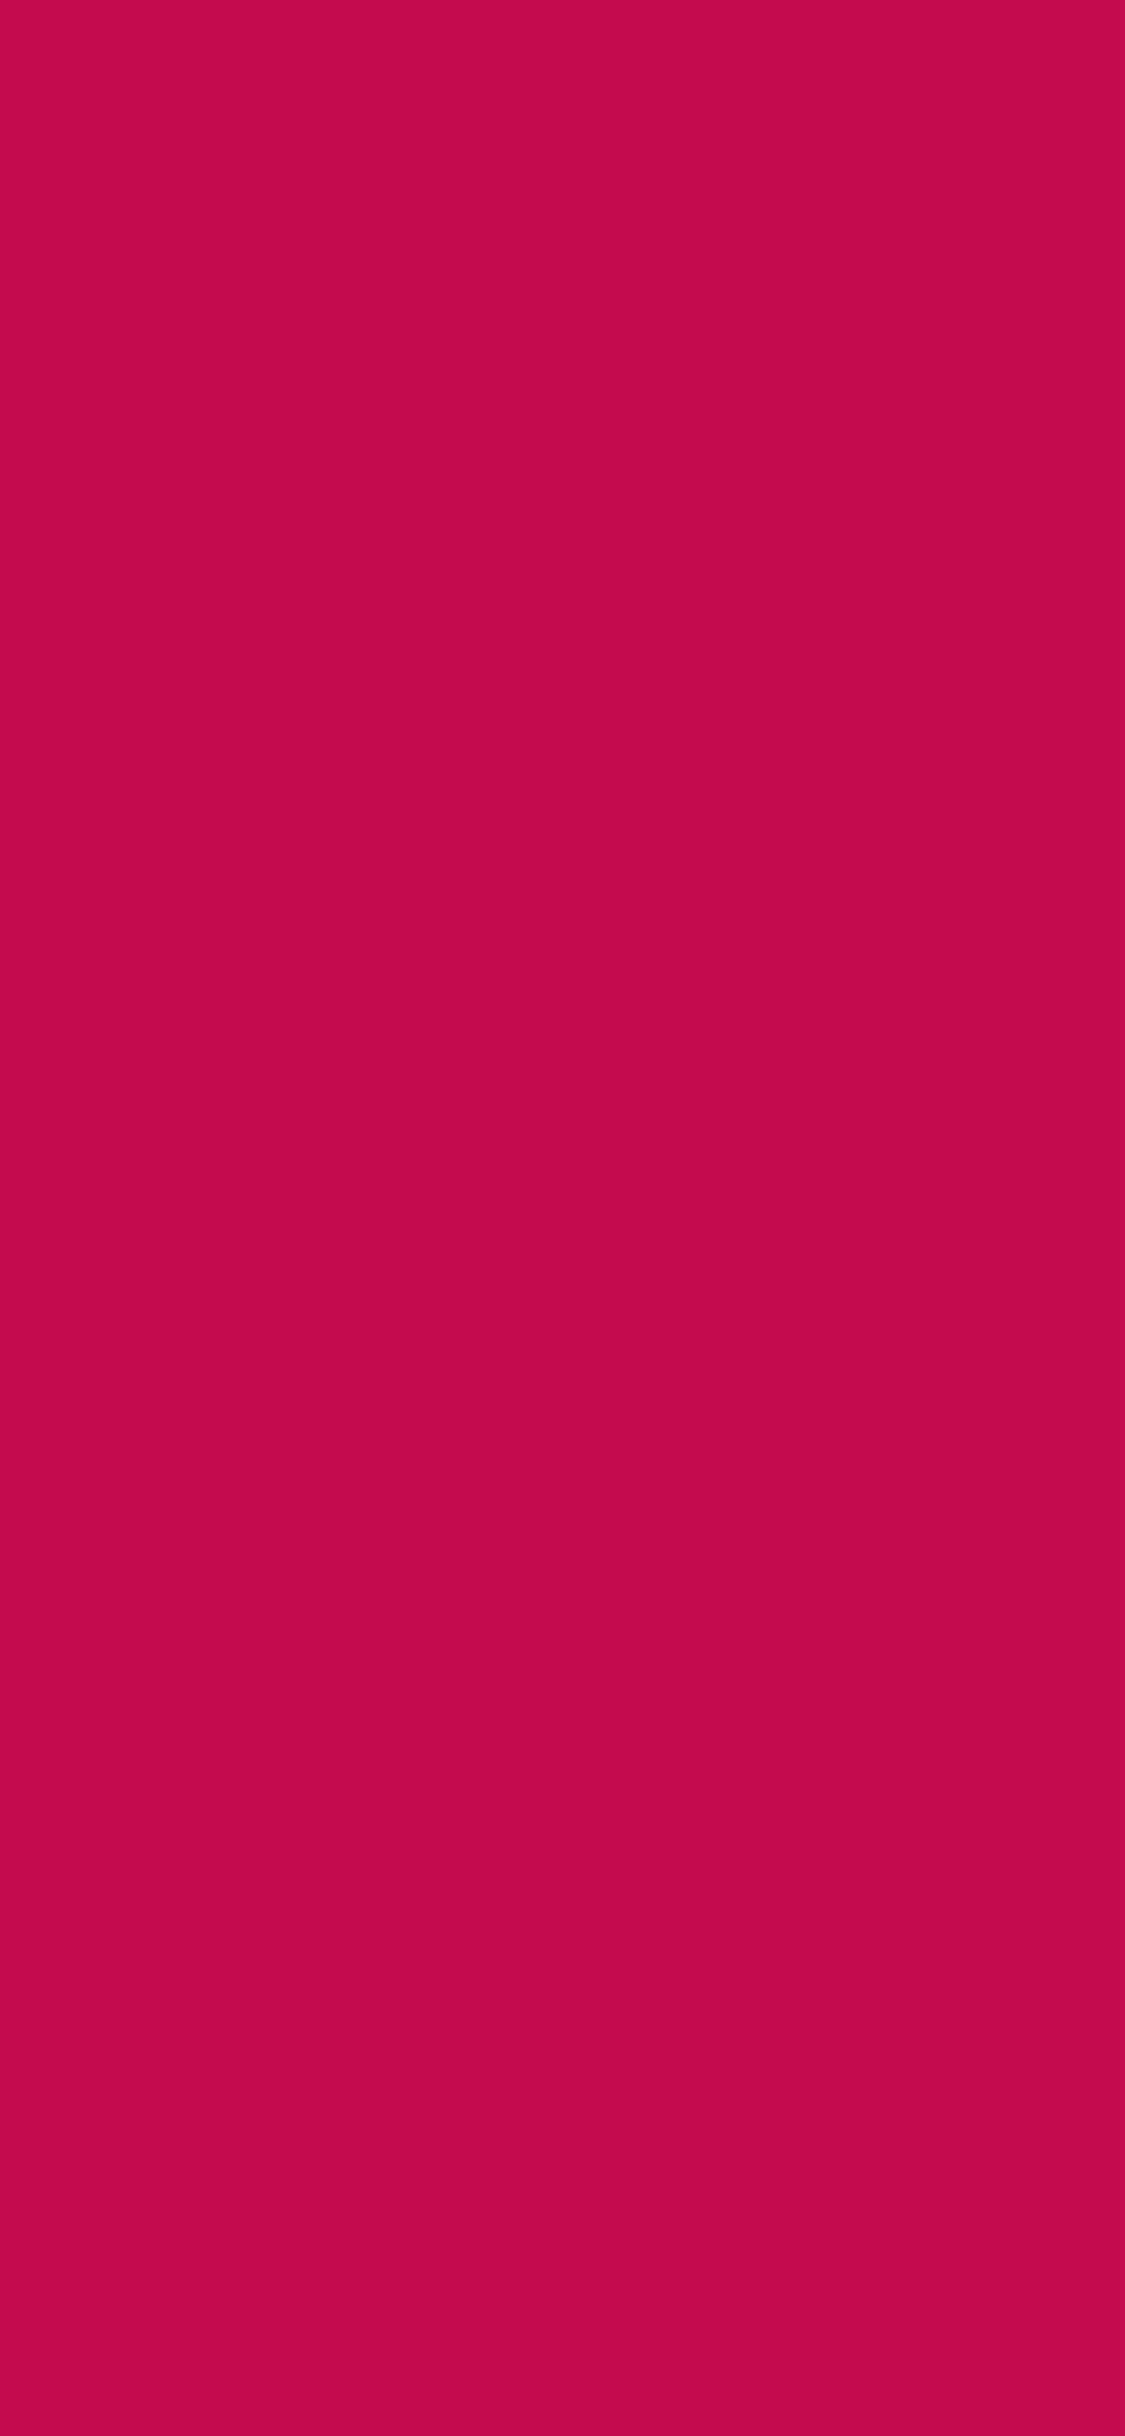 1125x2436 Pictorial Carmine Solid Color Background